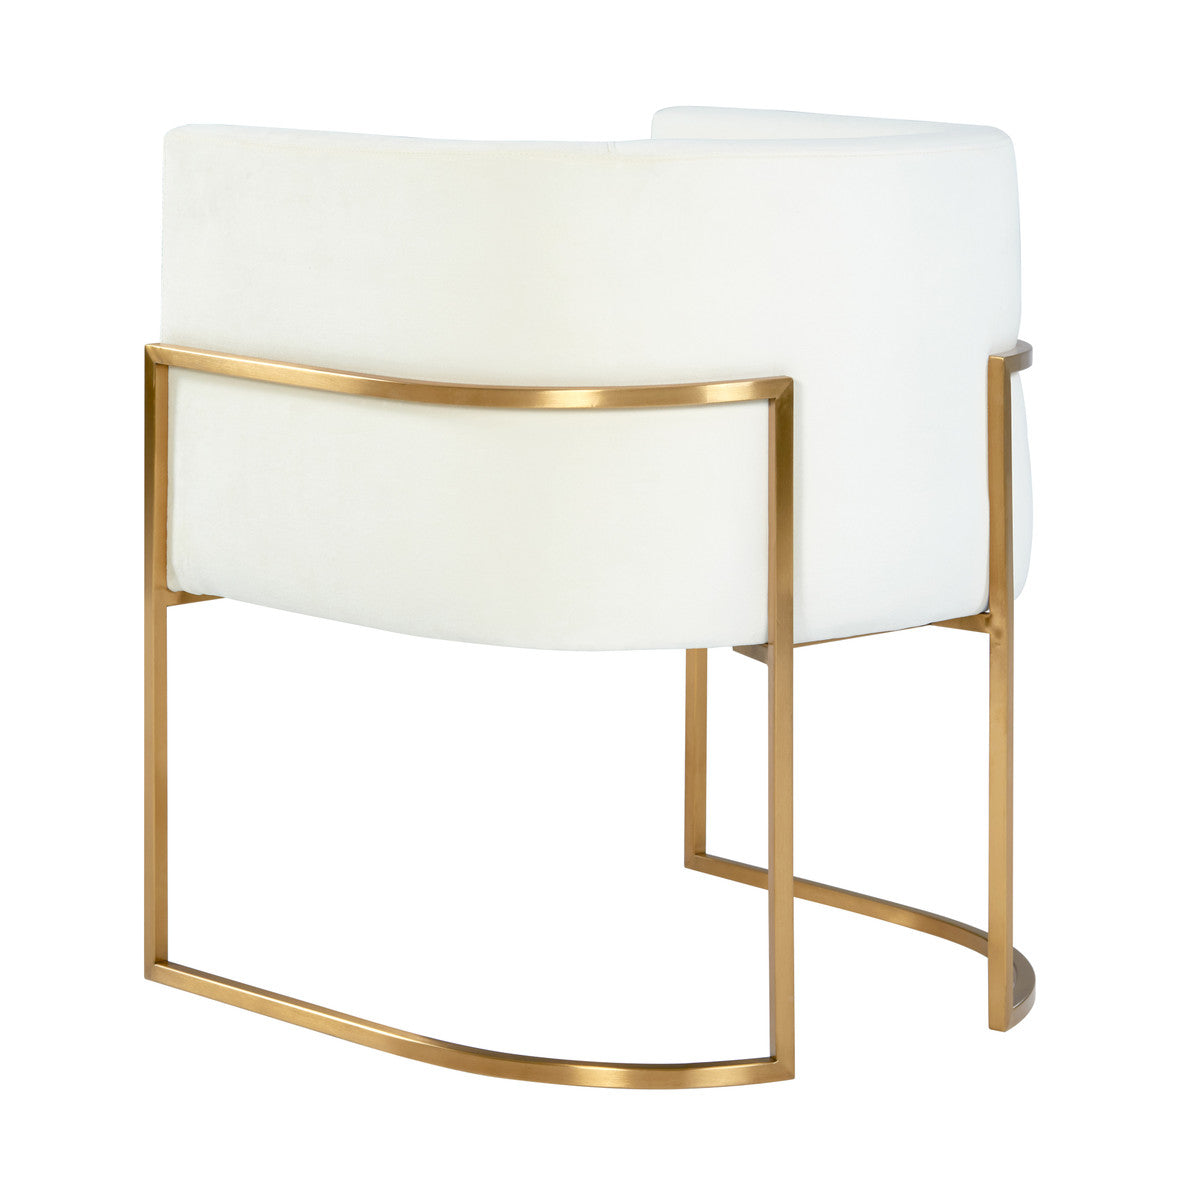 Giselle Velvet Dining Chair By Inspire Me! Home Decor